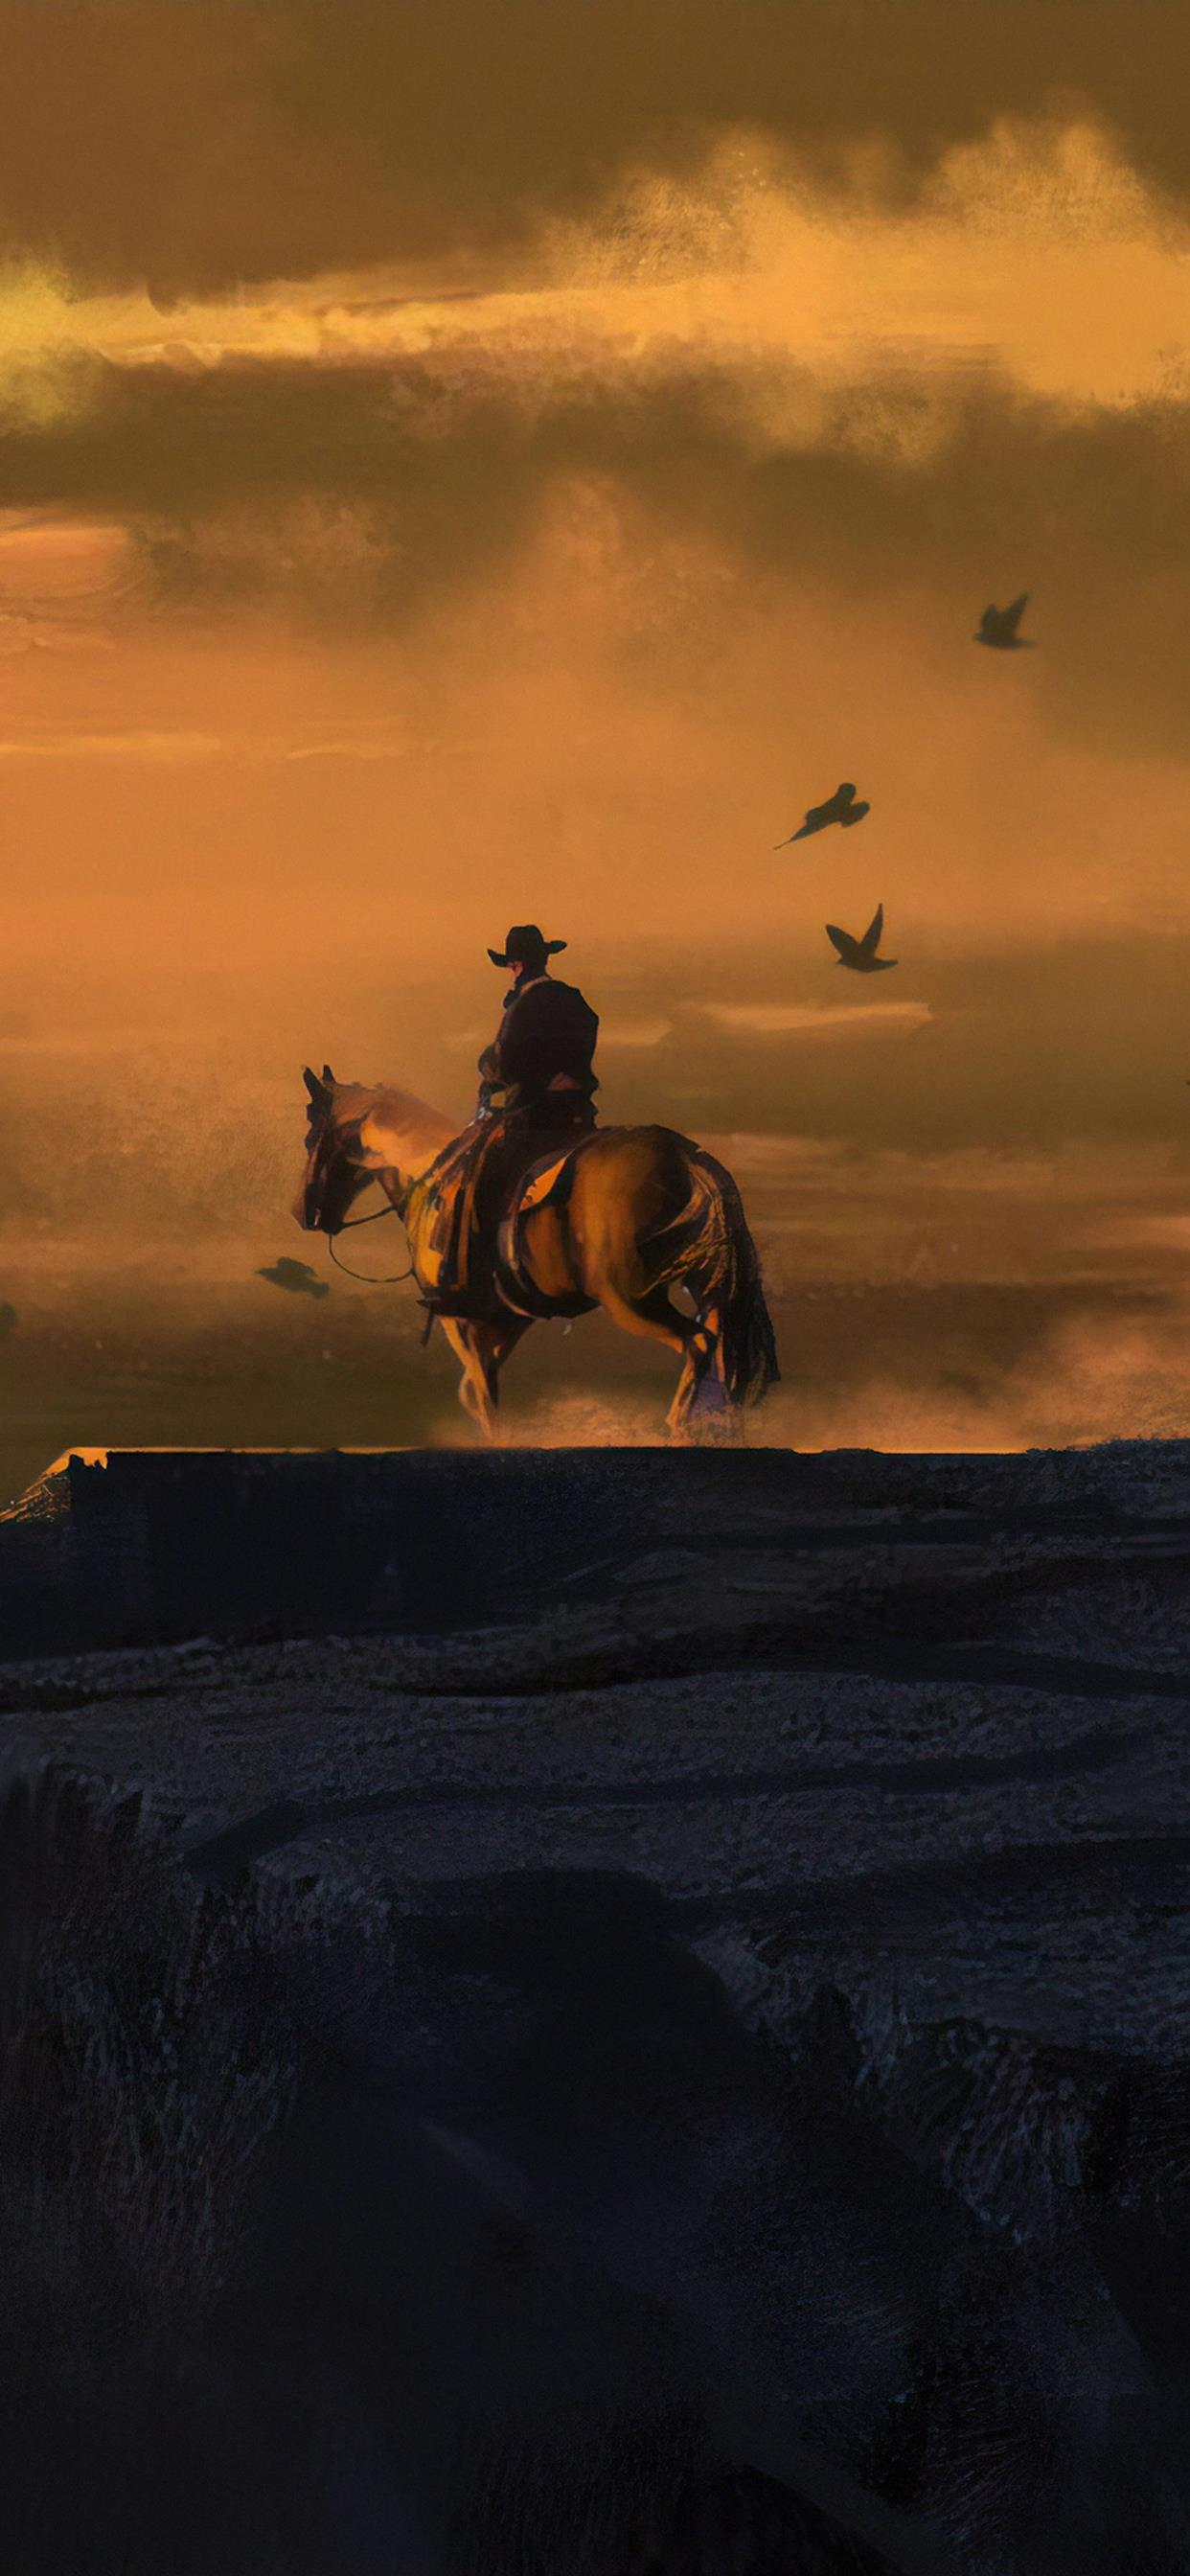 red dead redemption 4k landhscape iPhone X Wallpapers Free ...